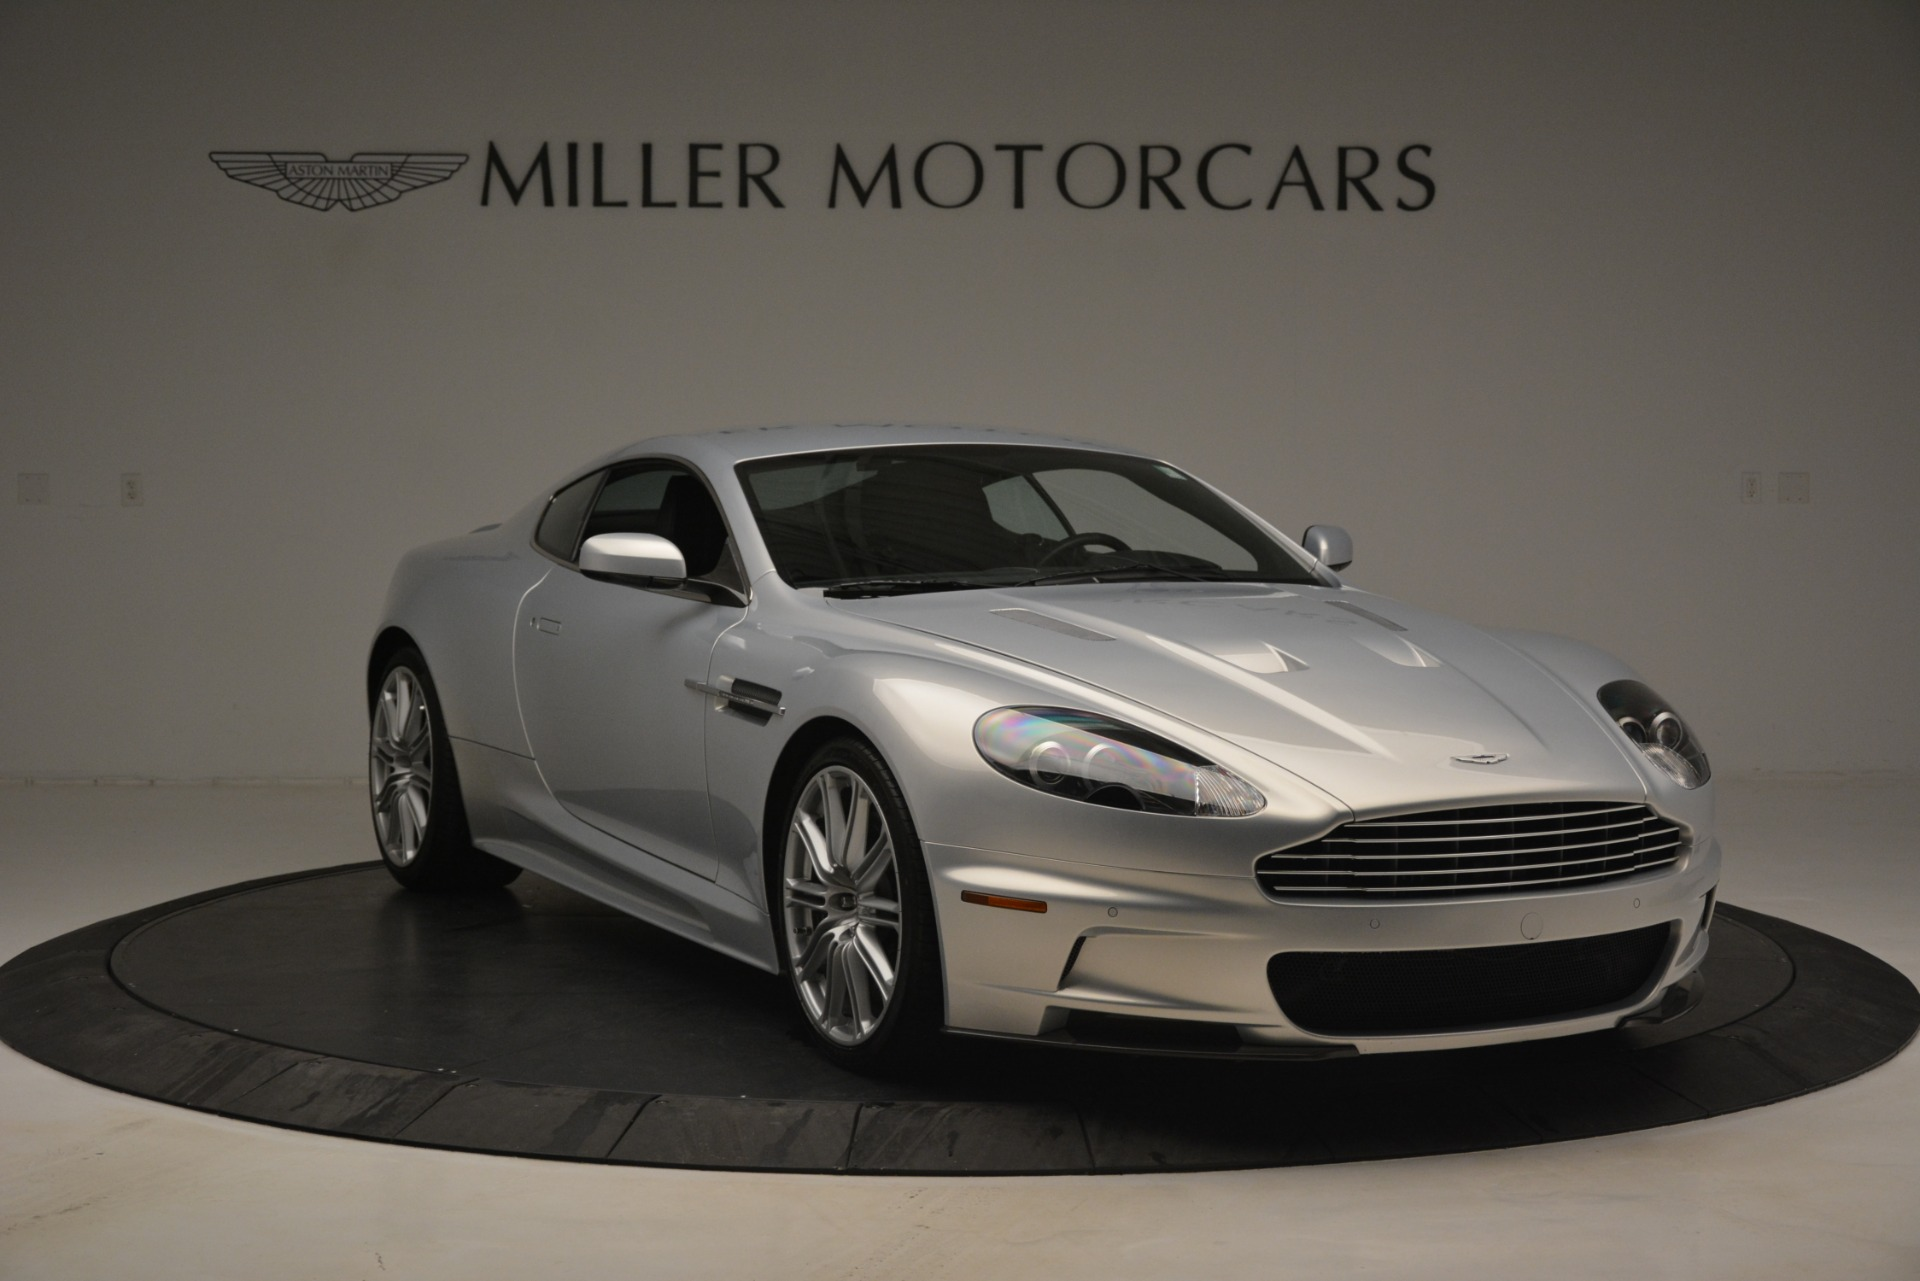 Used 2009 Aston Martin DBS Coupe For Sale In Westport, CT 3033_p11